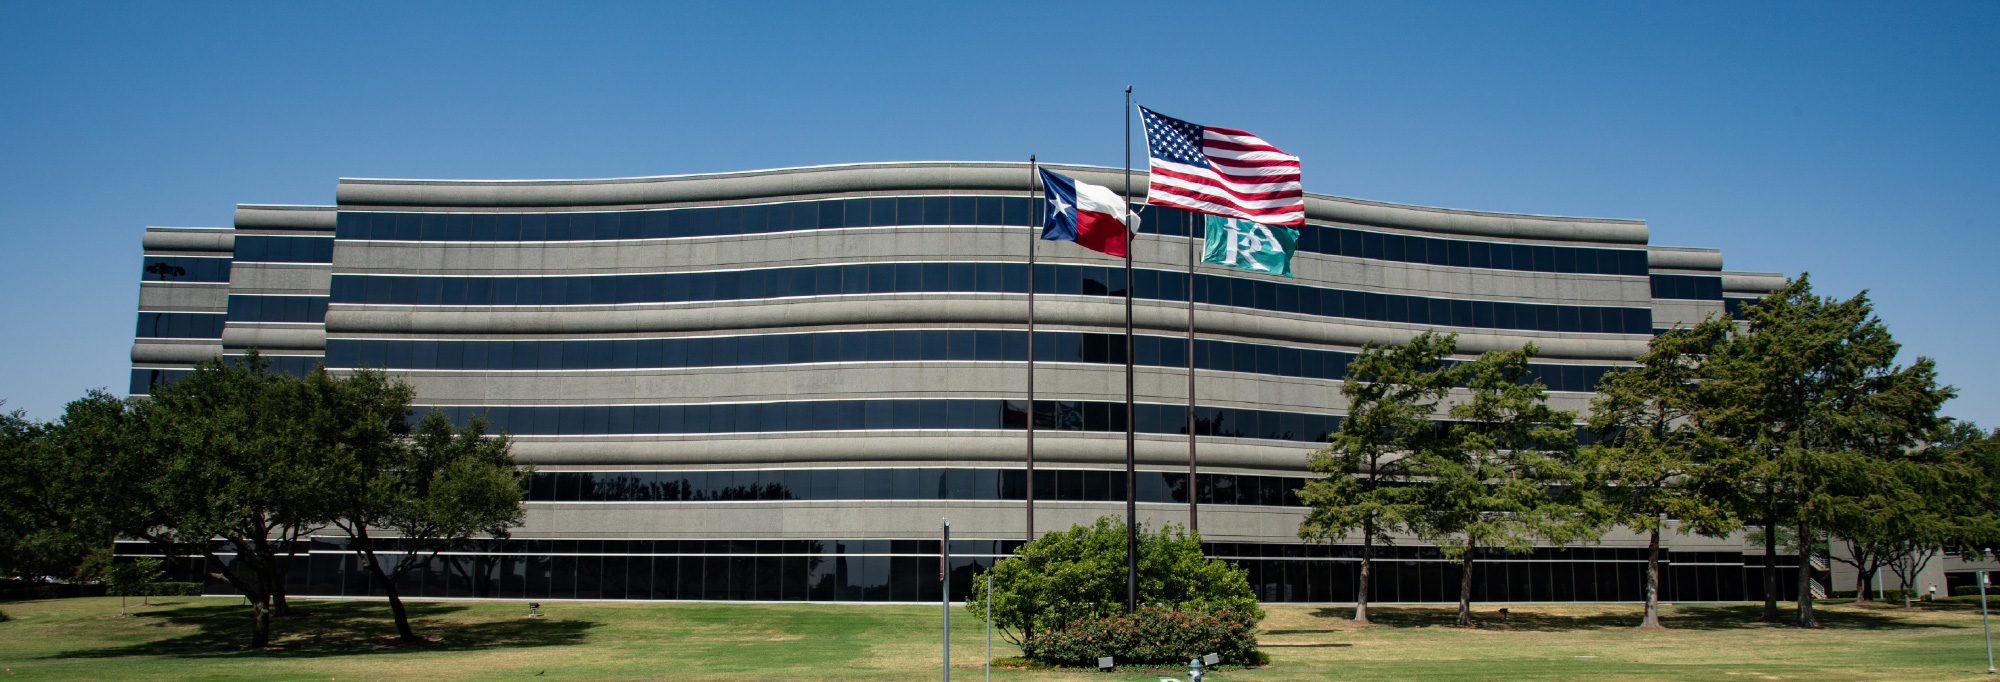 par-headquarters.jpg